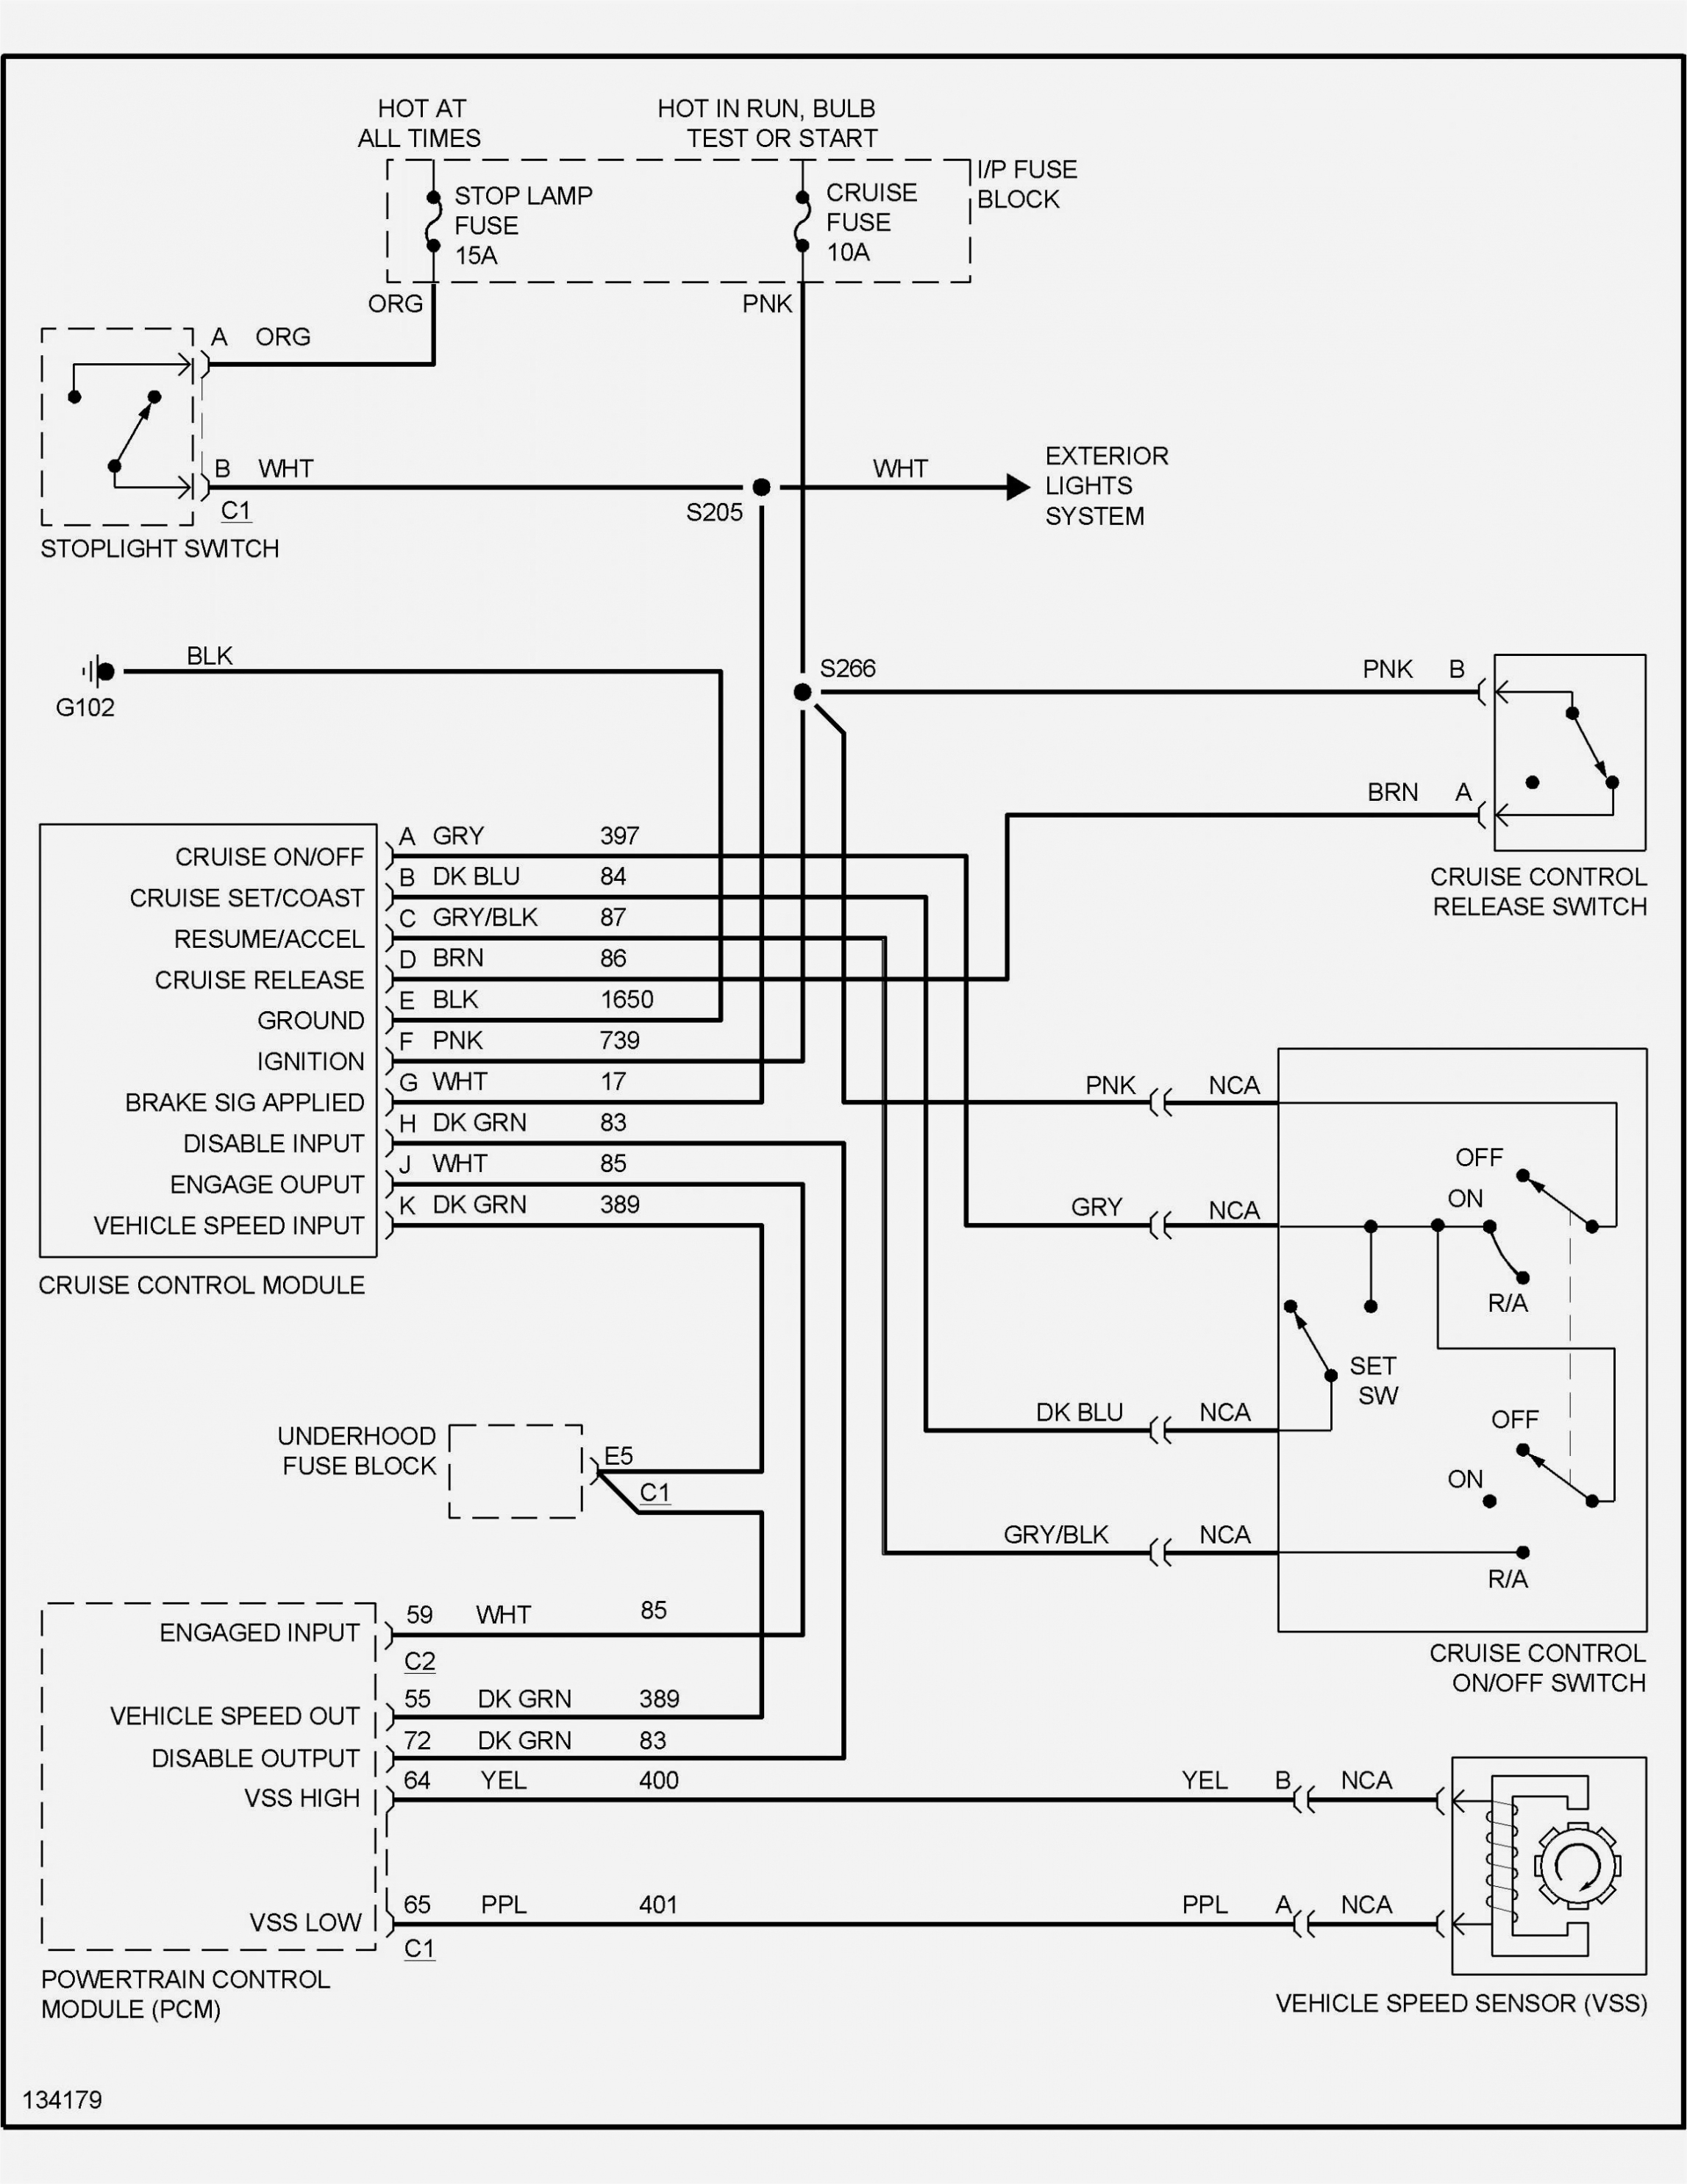 Sony Xplod Car Stereo Wiring Diagram from annawiringdiagram.com